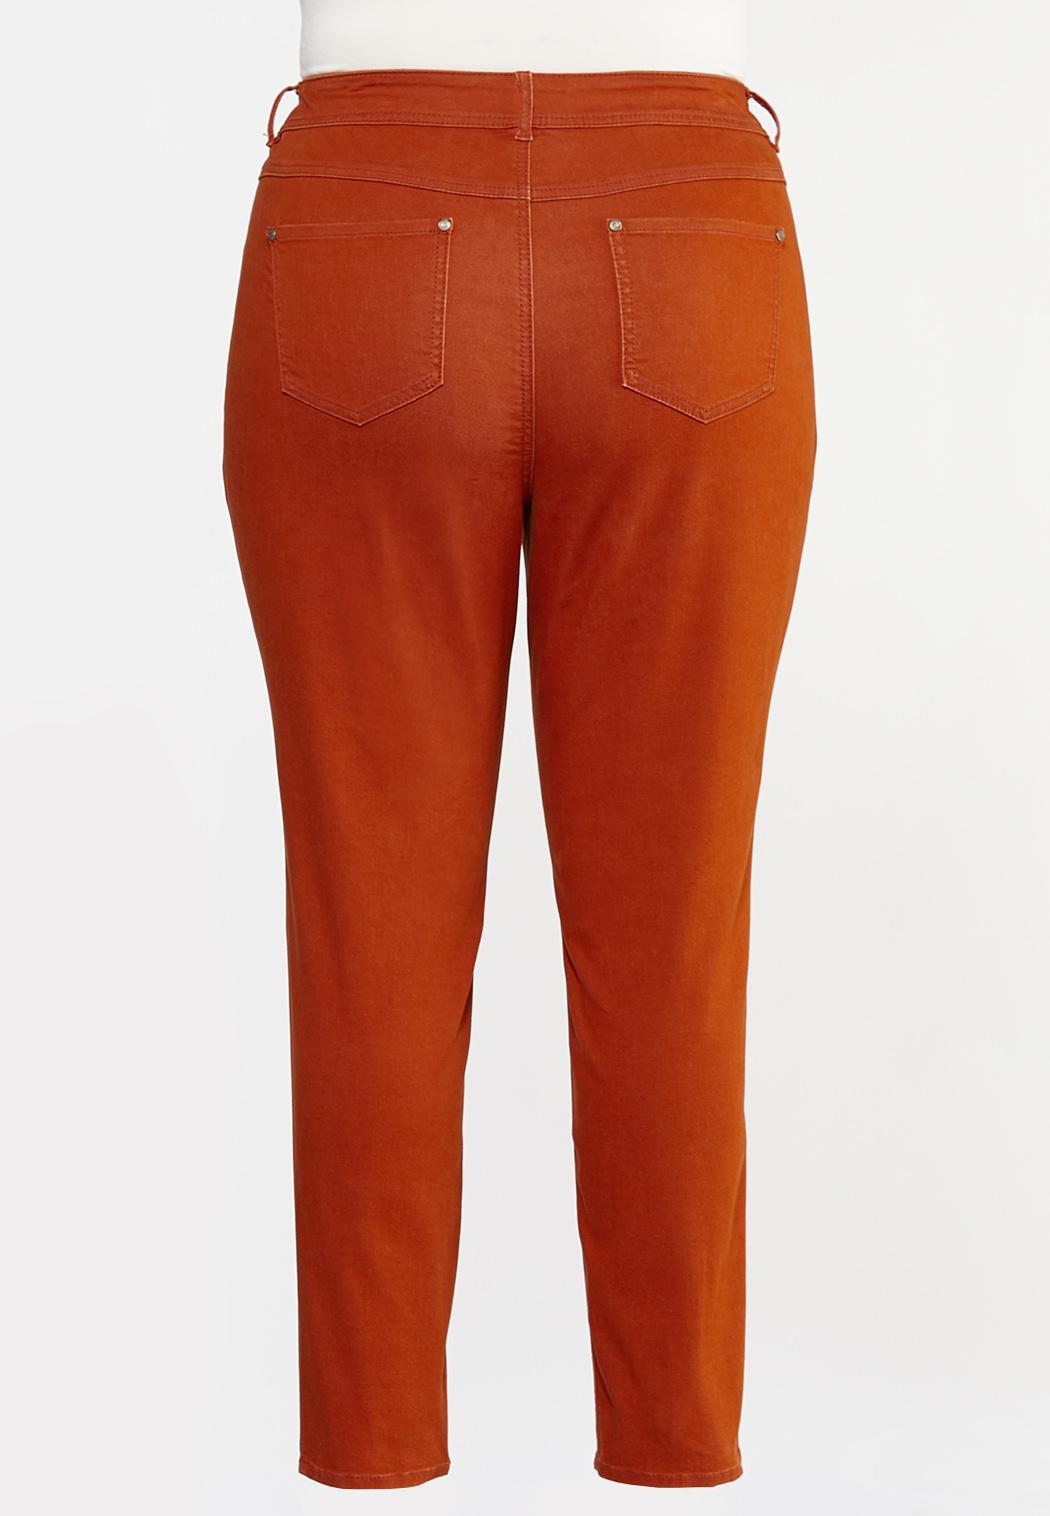 Plus Size High-Rise Colored Skinny Jeans (Item #44333825)